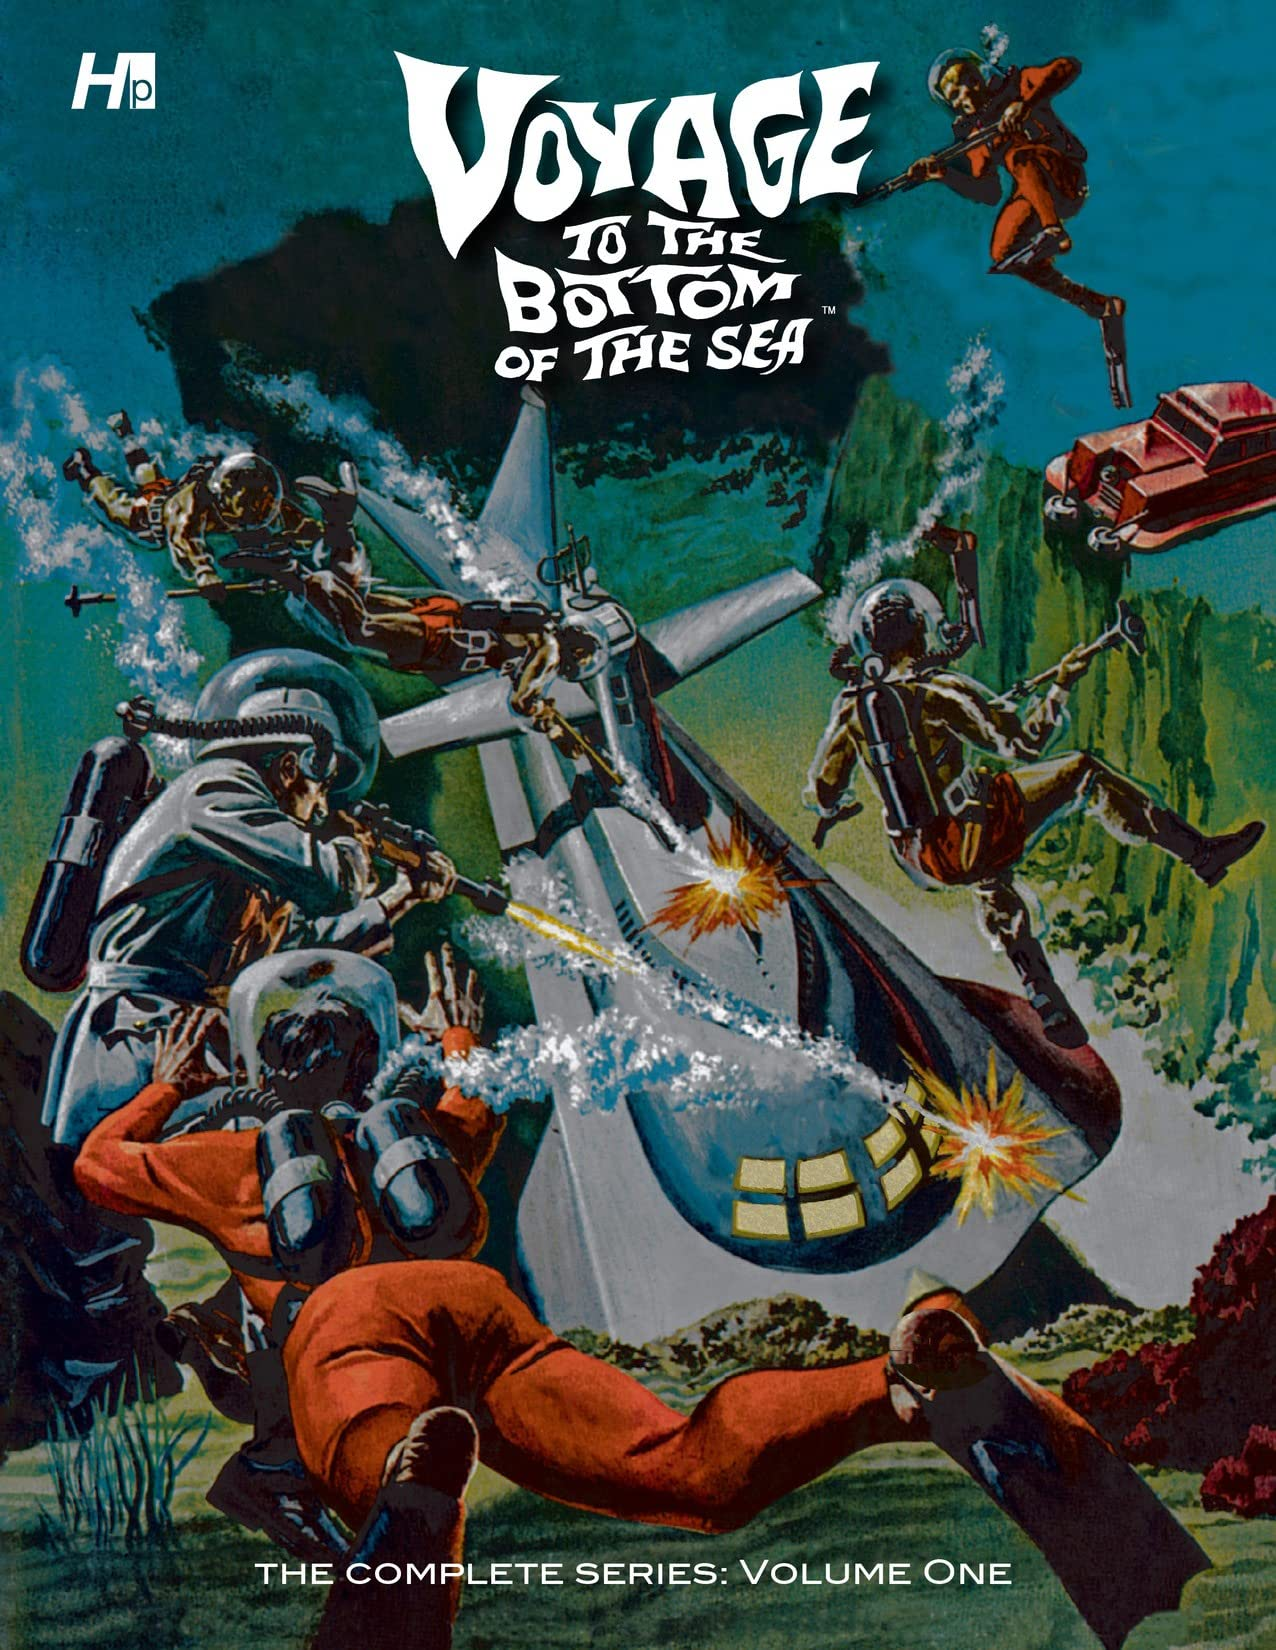 Voyage to the Bottom of the Sea: The Complete Series Vol. 1